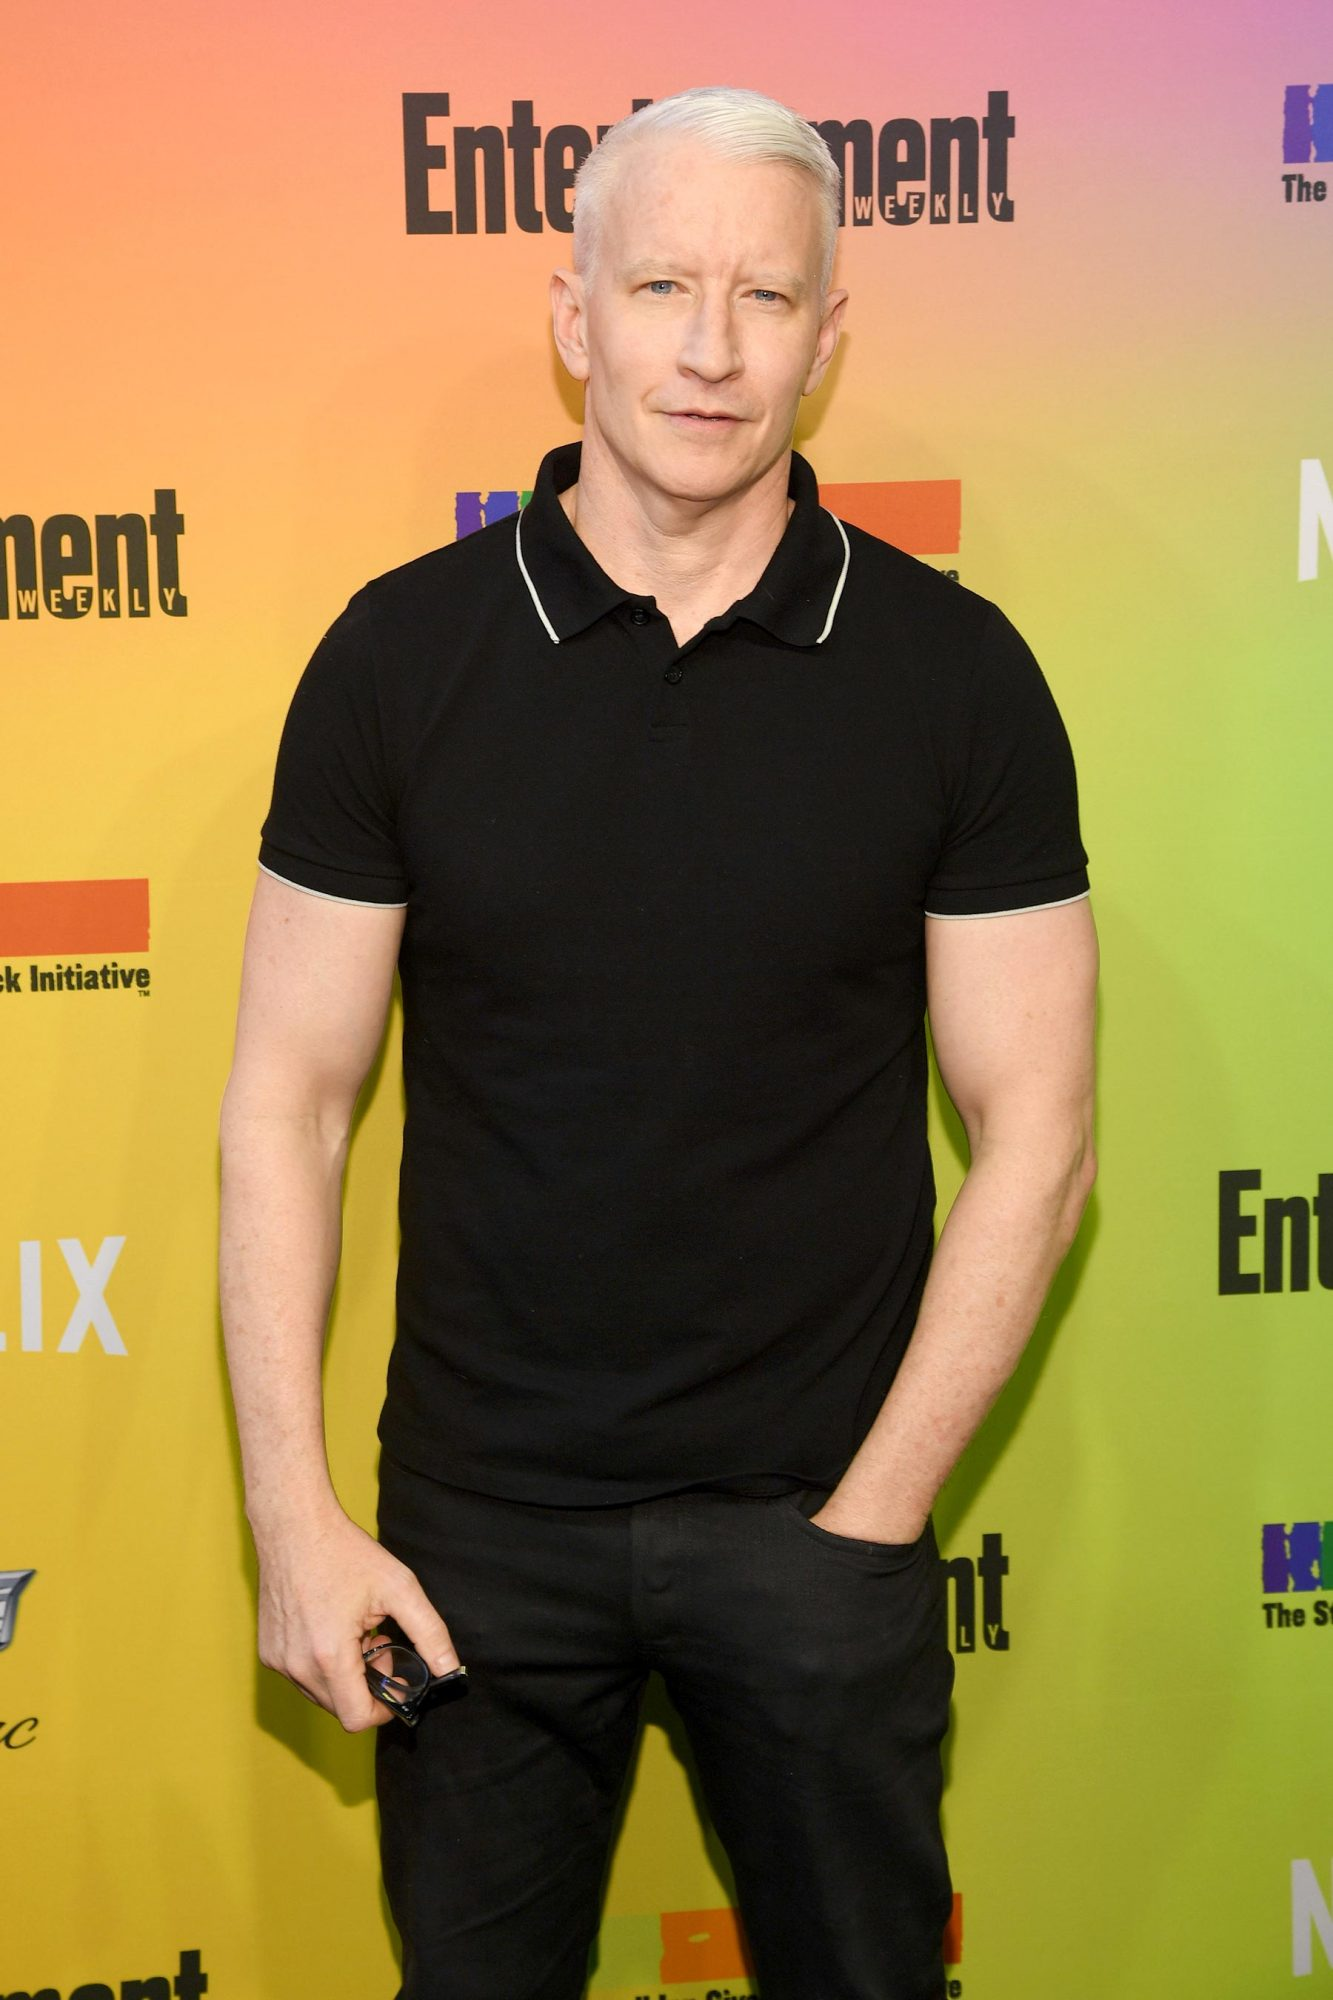 NEW YORK, NEW YORK - JUNE 05: Anderson Cooper attends as Entertainment Weekly Celebrates Its Annual LGBTQ Issue at the Stonewall Inn on June 05, 2019 in New York City. (Photo by Dimitrios Kambouris/Getty Images for Entertainment Weekly)